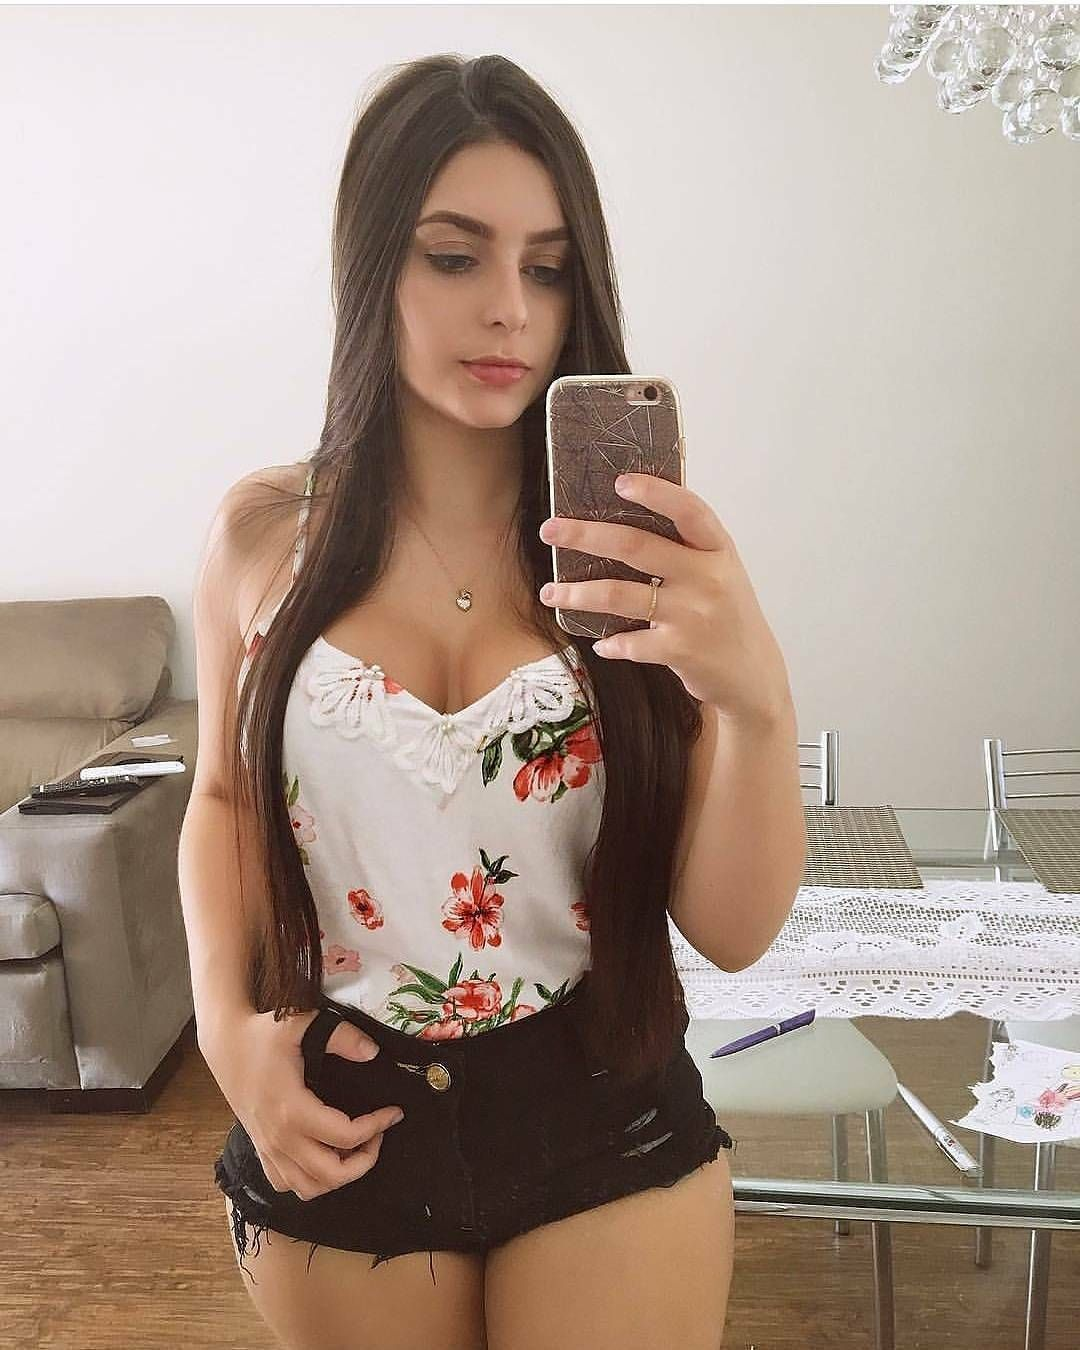 Sexy Hot Teen Girl Cute Pretty Instadaily Handsome Guapa Linda Minishorts Selfie